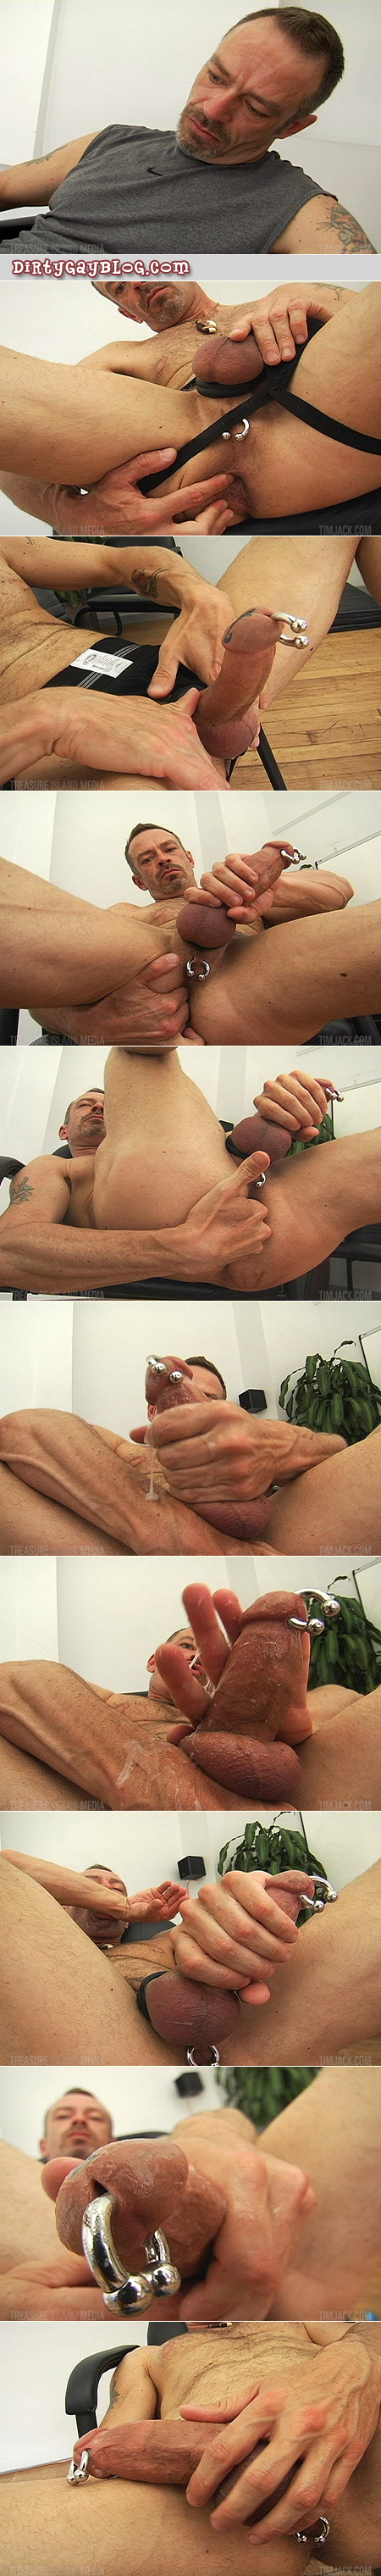 Hairy Daddy plays with his asshole and guiche while he strokes his pierced, tattooed penis.